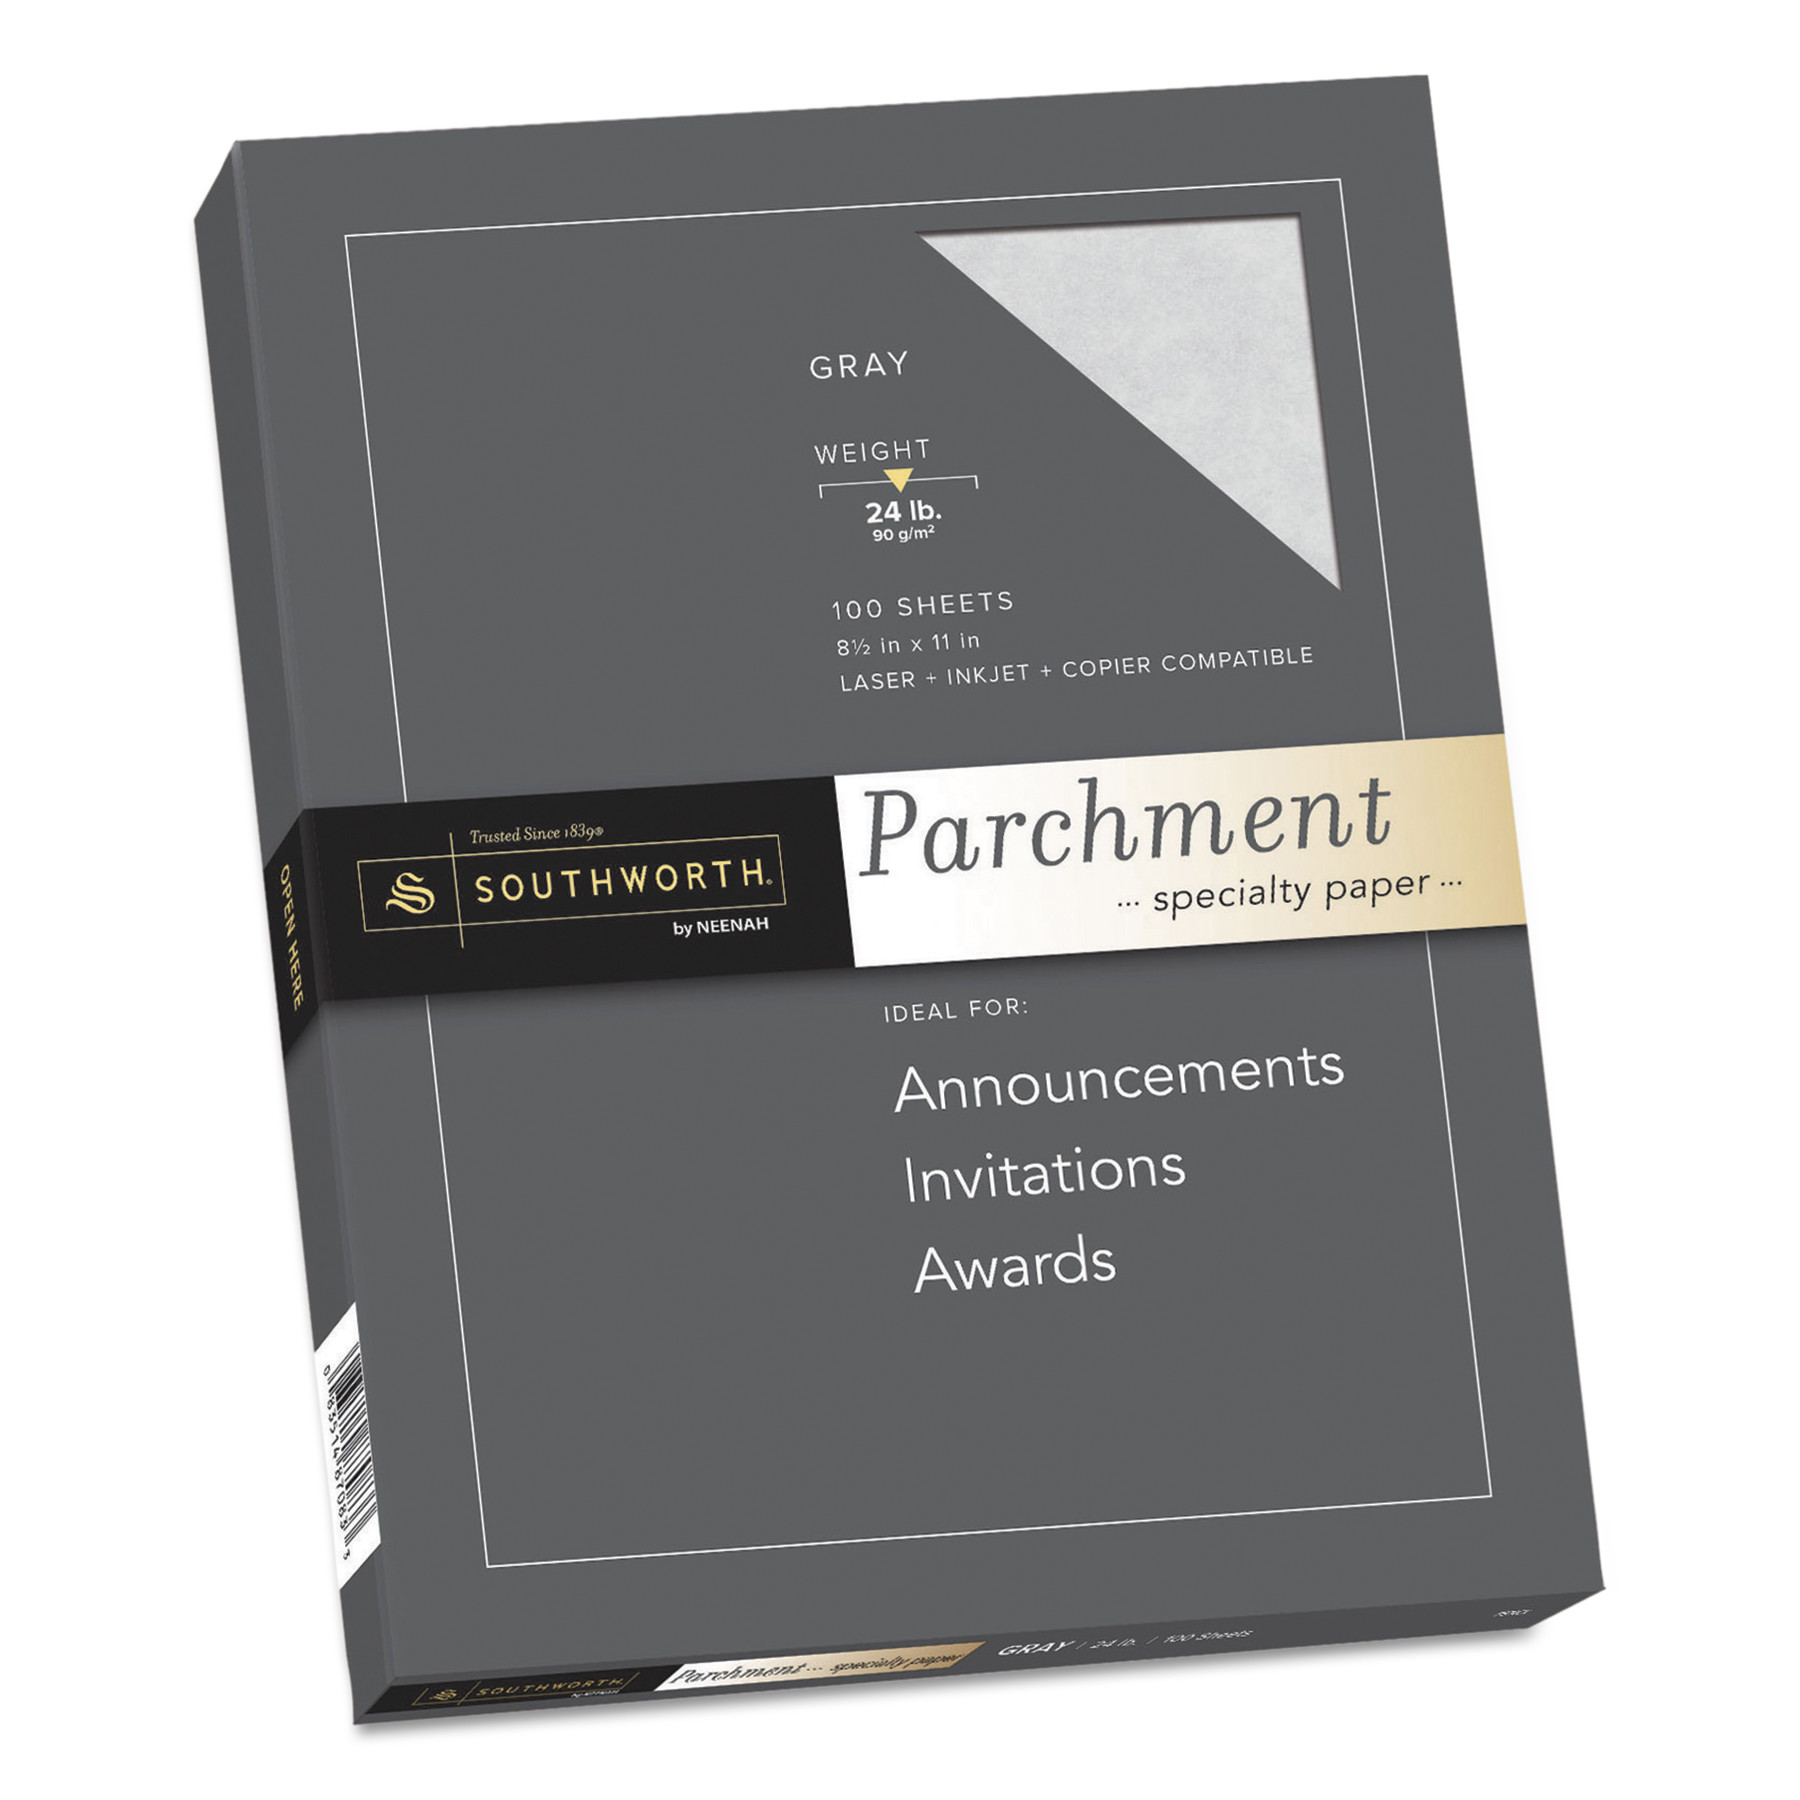 Southworth Parchment Specialty Paper, 24lb, 8 1/2 x 11, Gray, 100 Sheets -SOUP974CK336